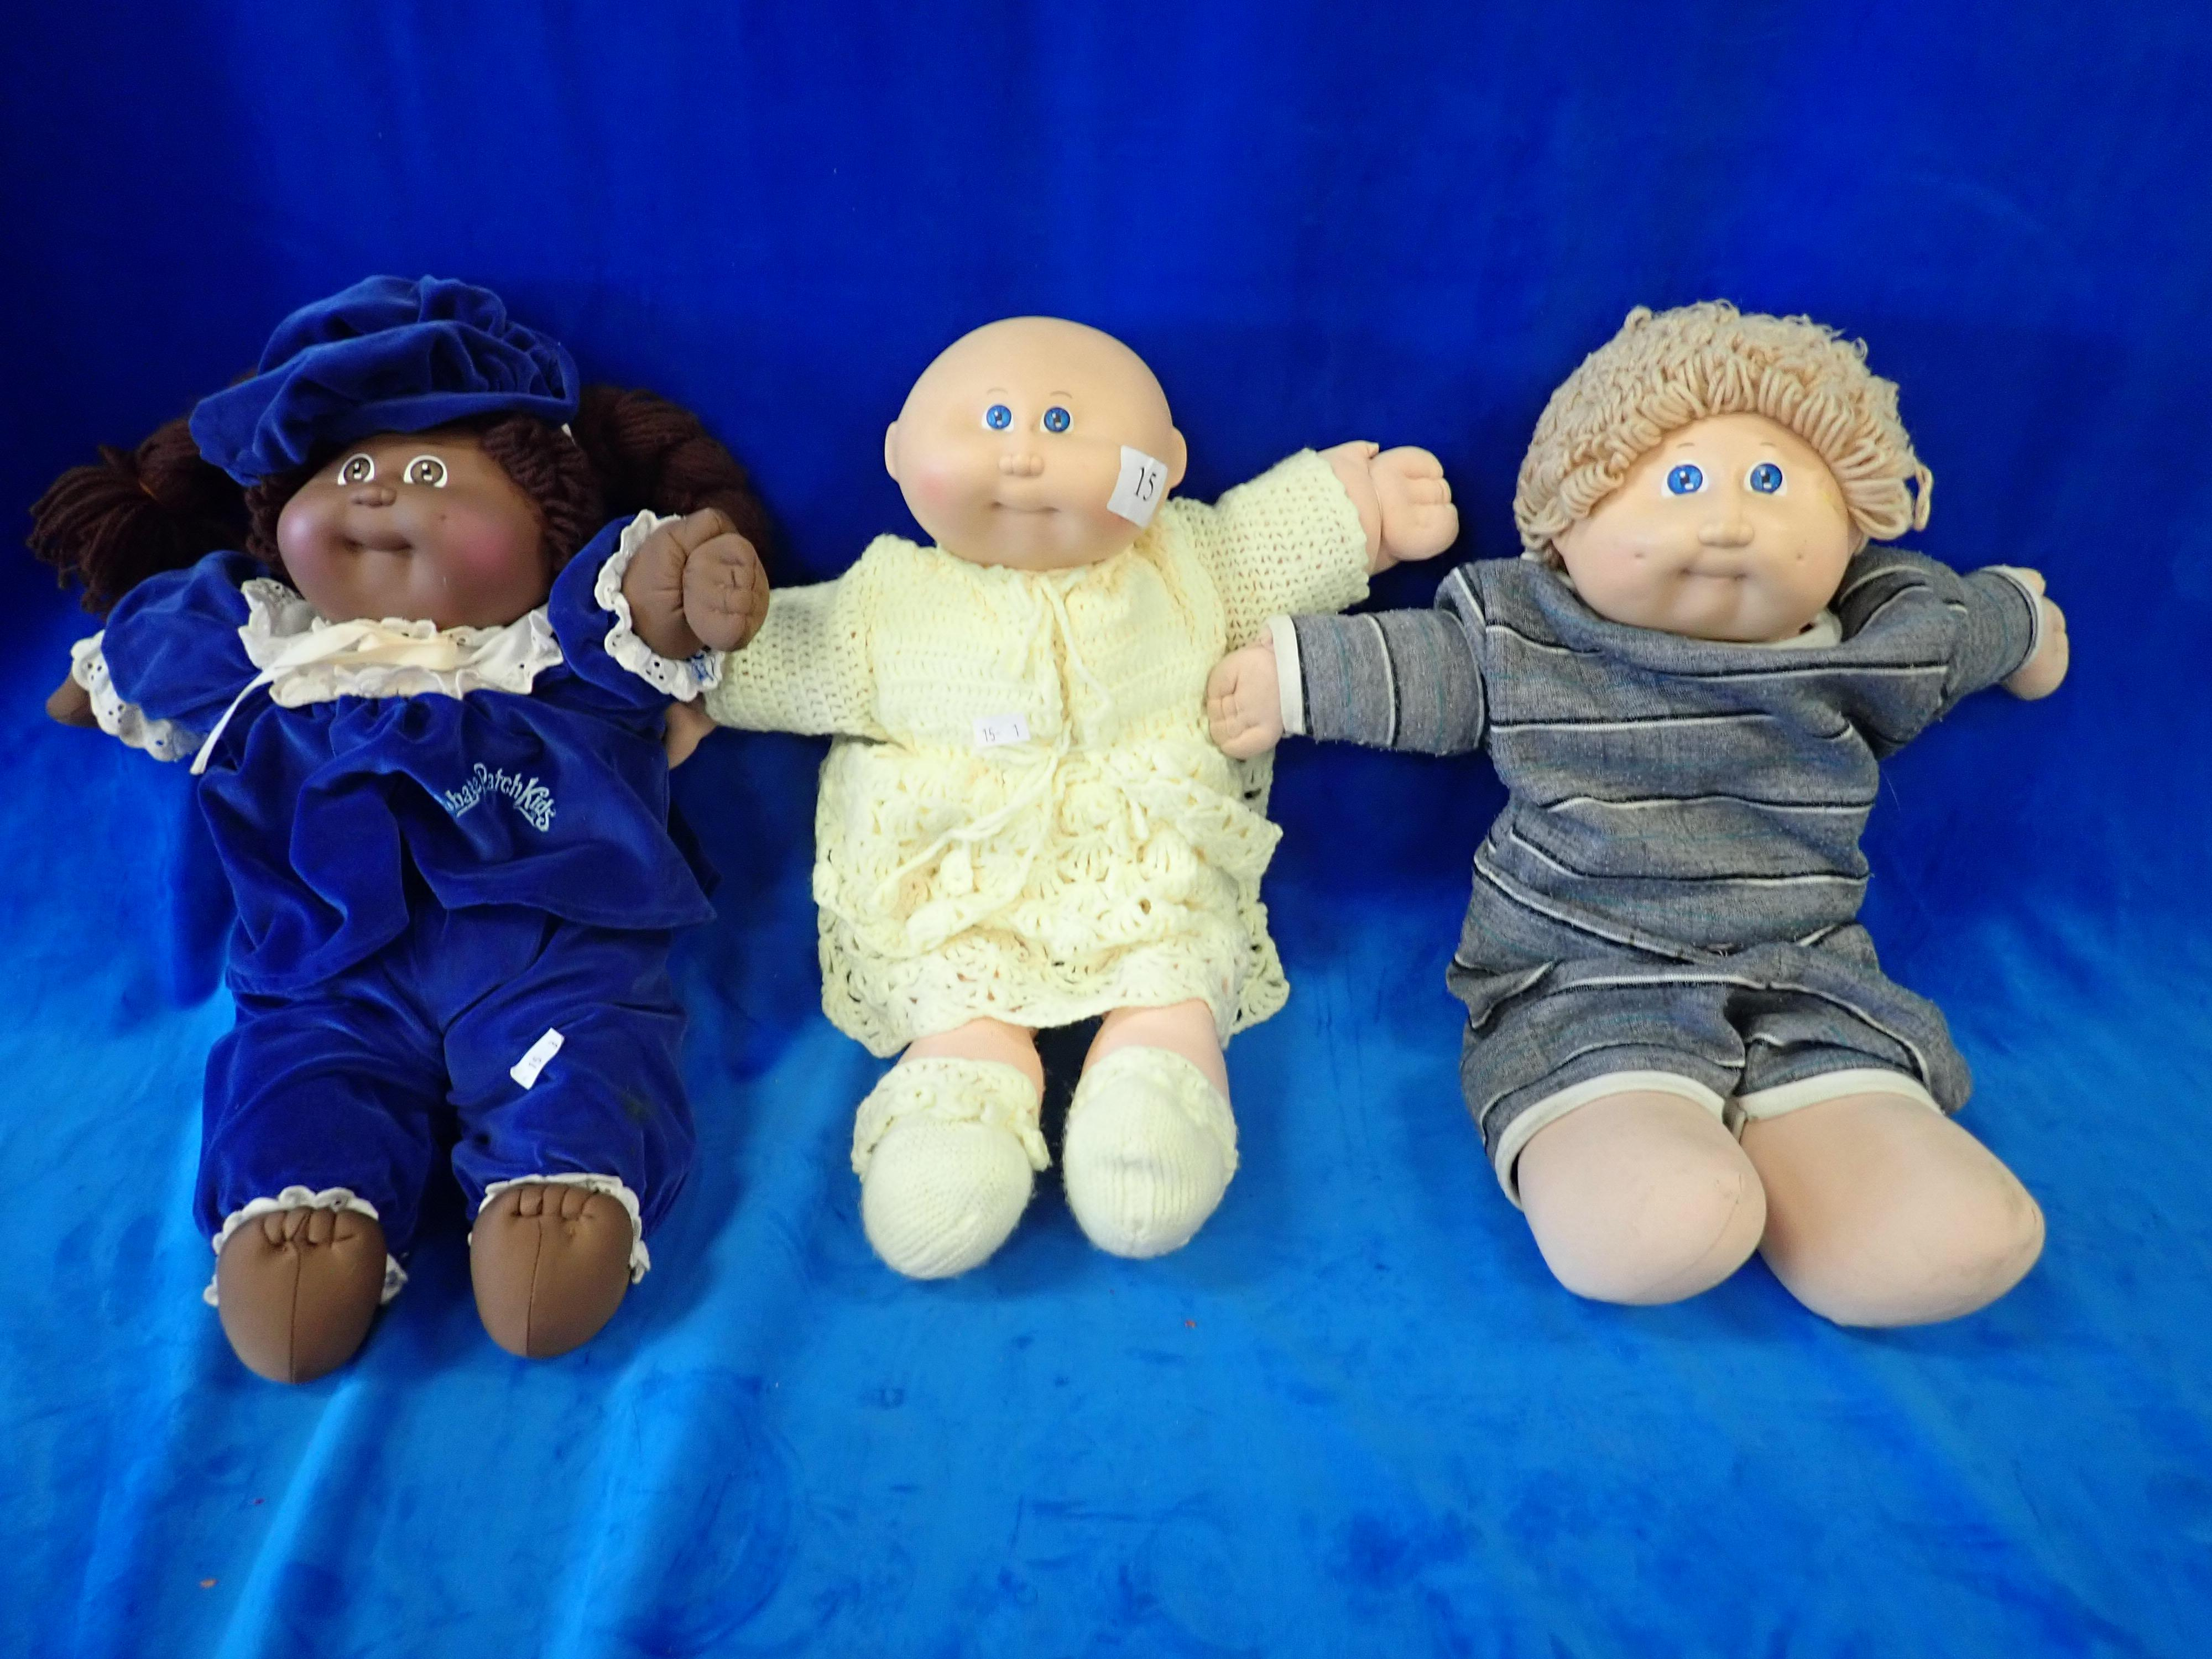 3 VINTAGE CABBAGE PATCH DOLLS 1978-1982 (1) NO. 25 BOLD BLUE EYES (2) NO. 41 BLOND BLUE EYES EXAVIER ROBERTS (3) NO. 14 DARK COLOUR BRUNETTE WITH PIGTAILS AND BROWN EYES